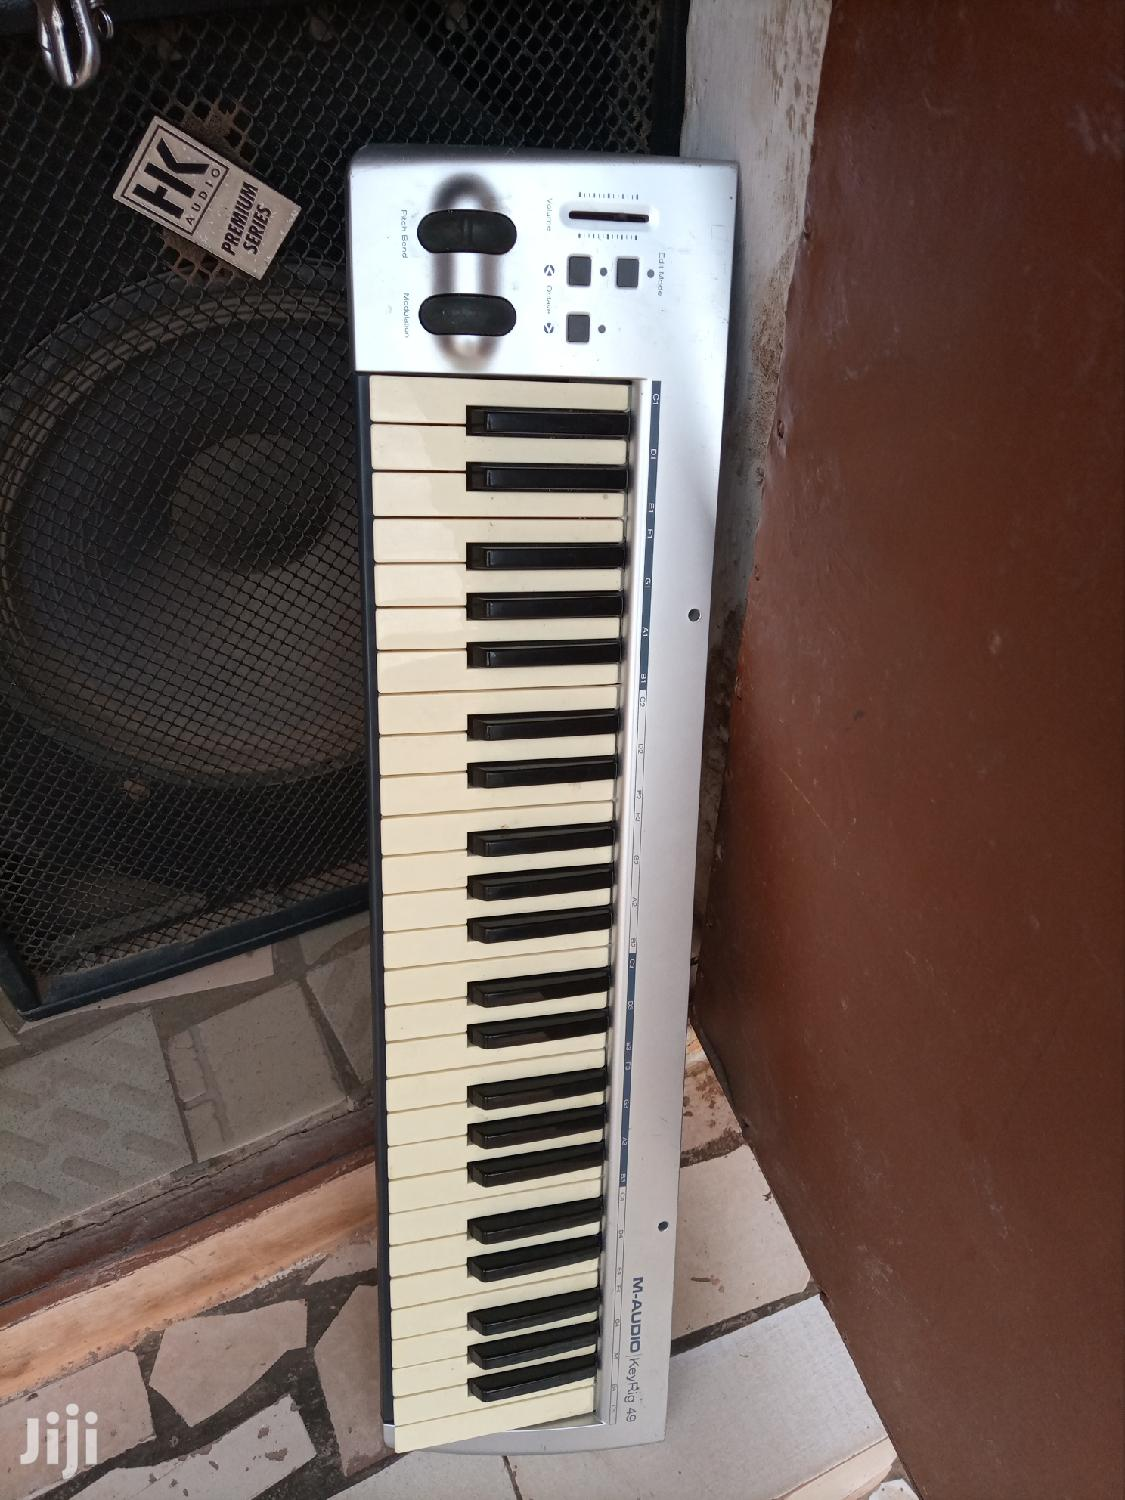 M Audio Midi Keys 49 Keys | Musical Instruments & Gear for sale in Accra Metropolitan, Greater Accra, Ghana